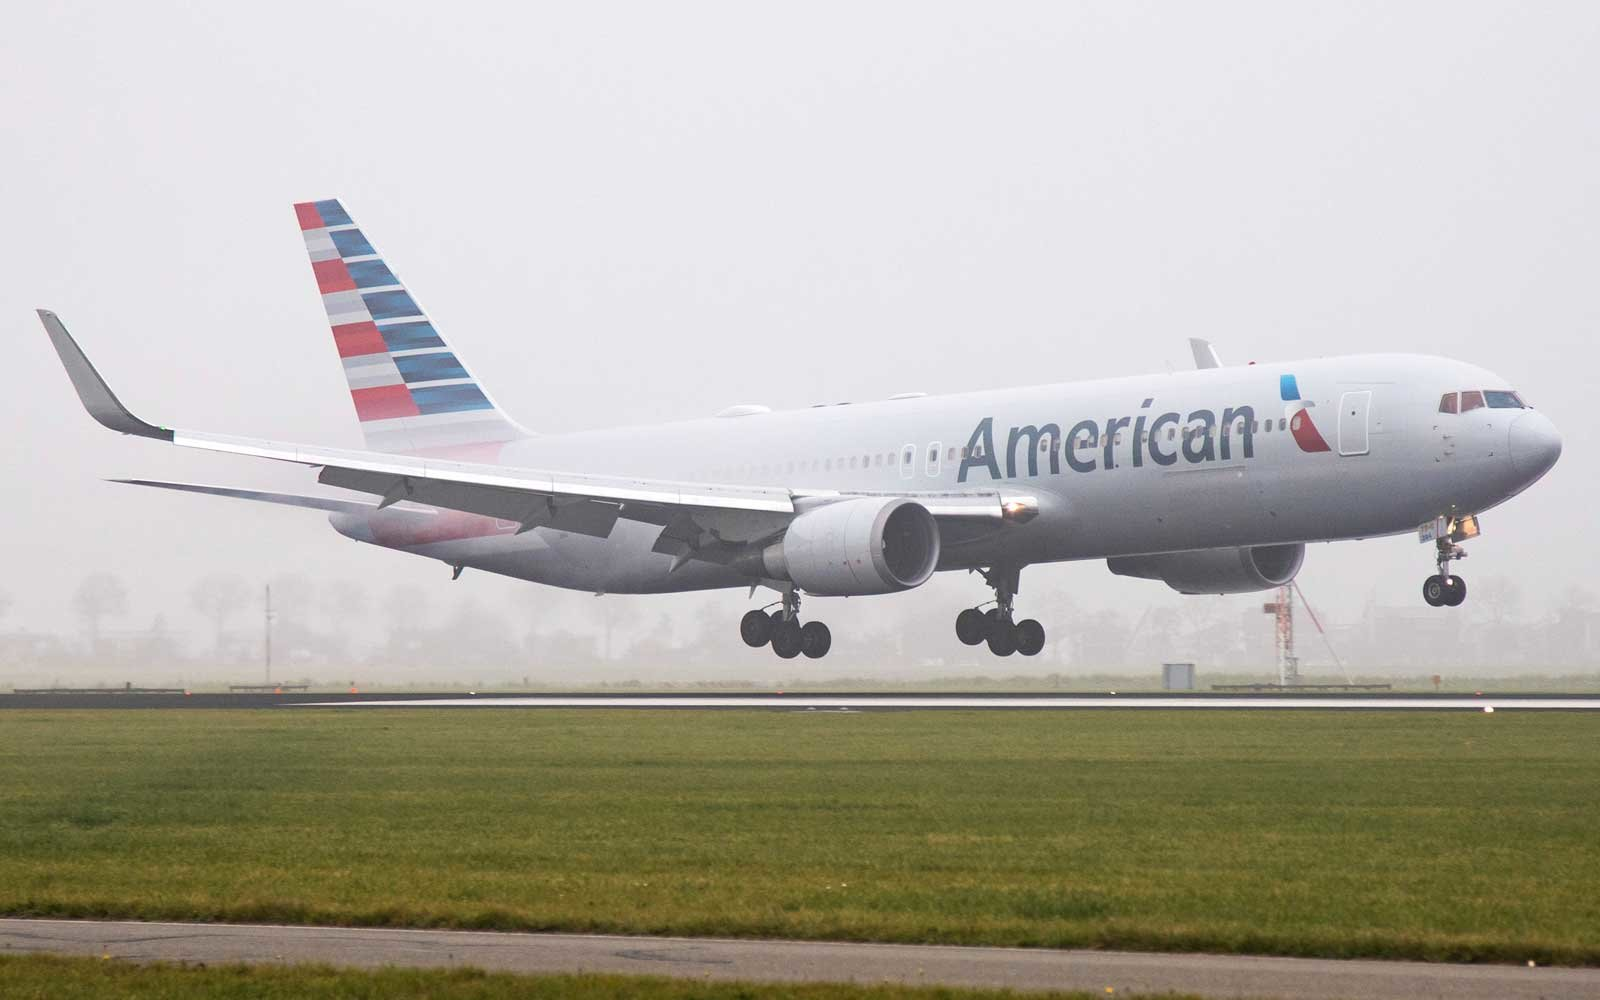 American Airlines plane on landing